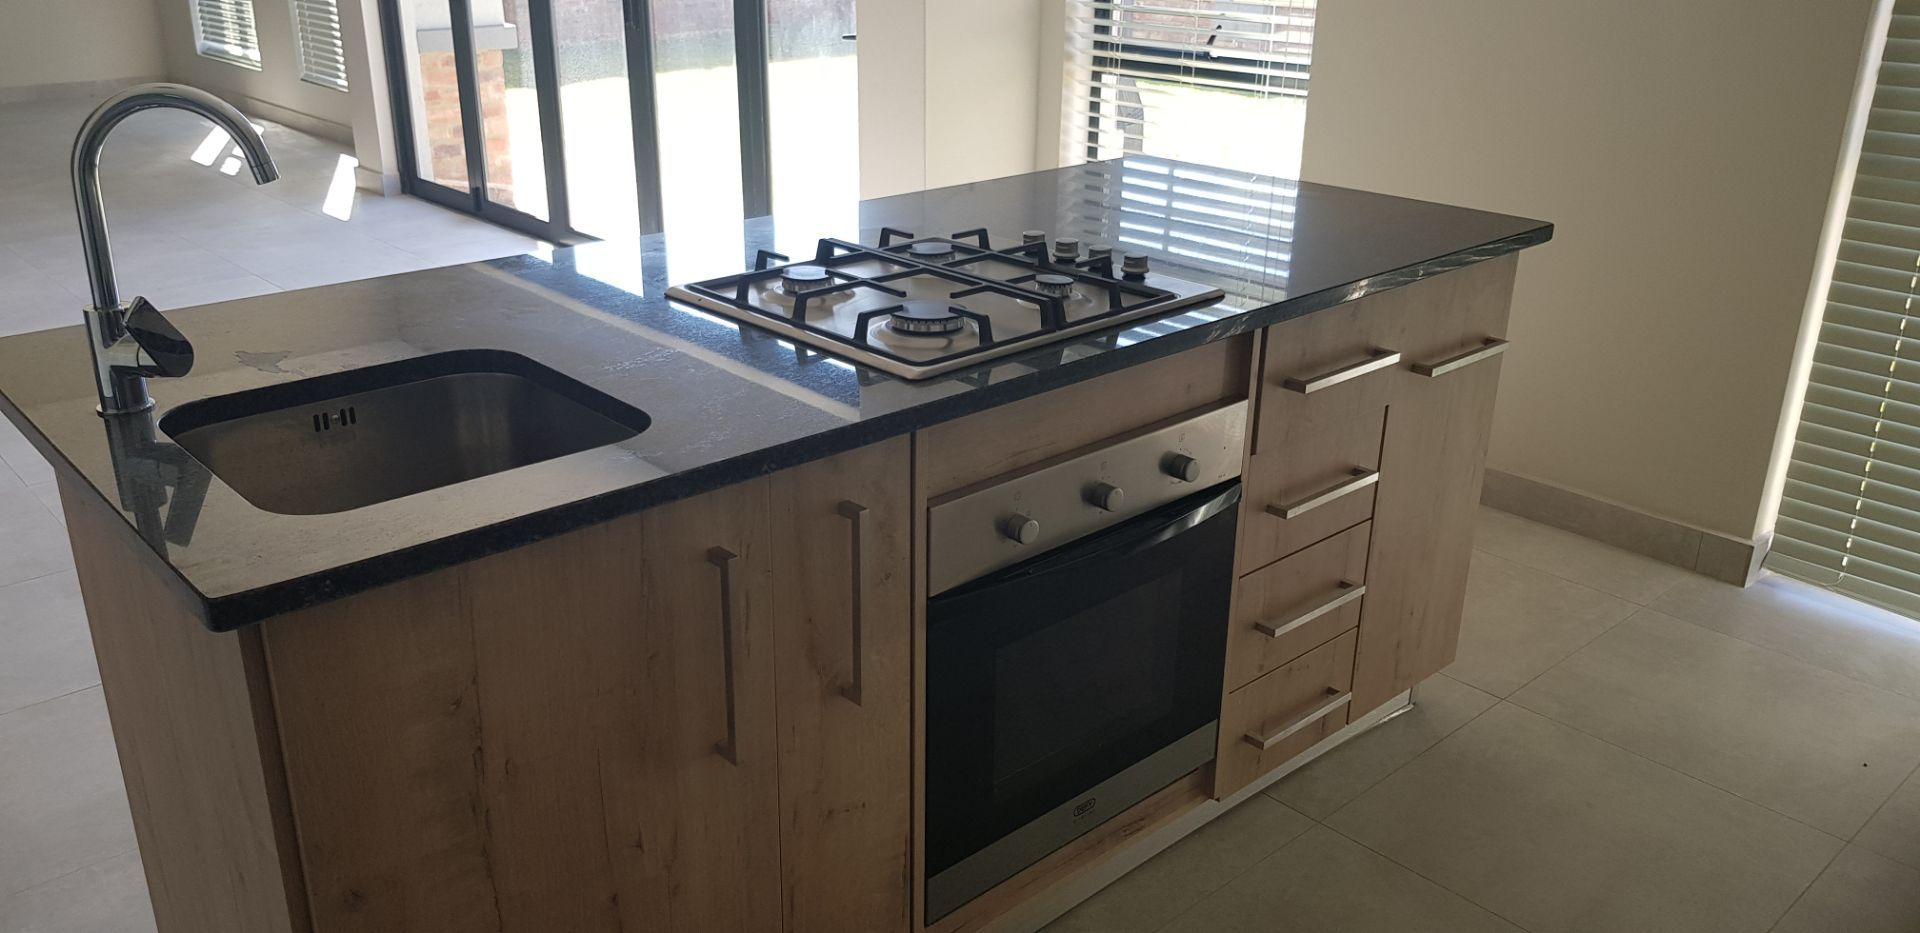 House in Lifestyle Estate - 20190712_111409.jpg